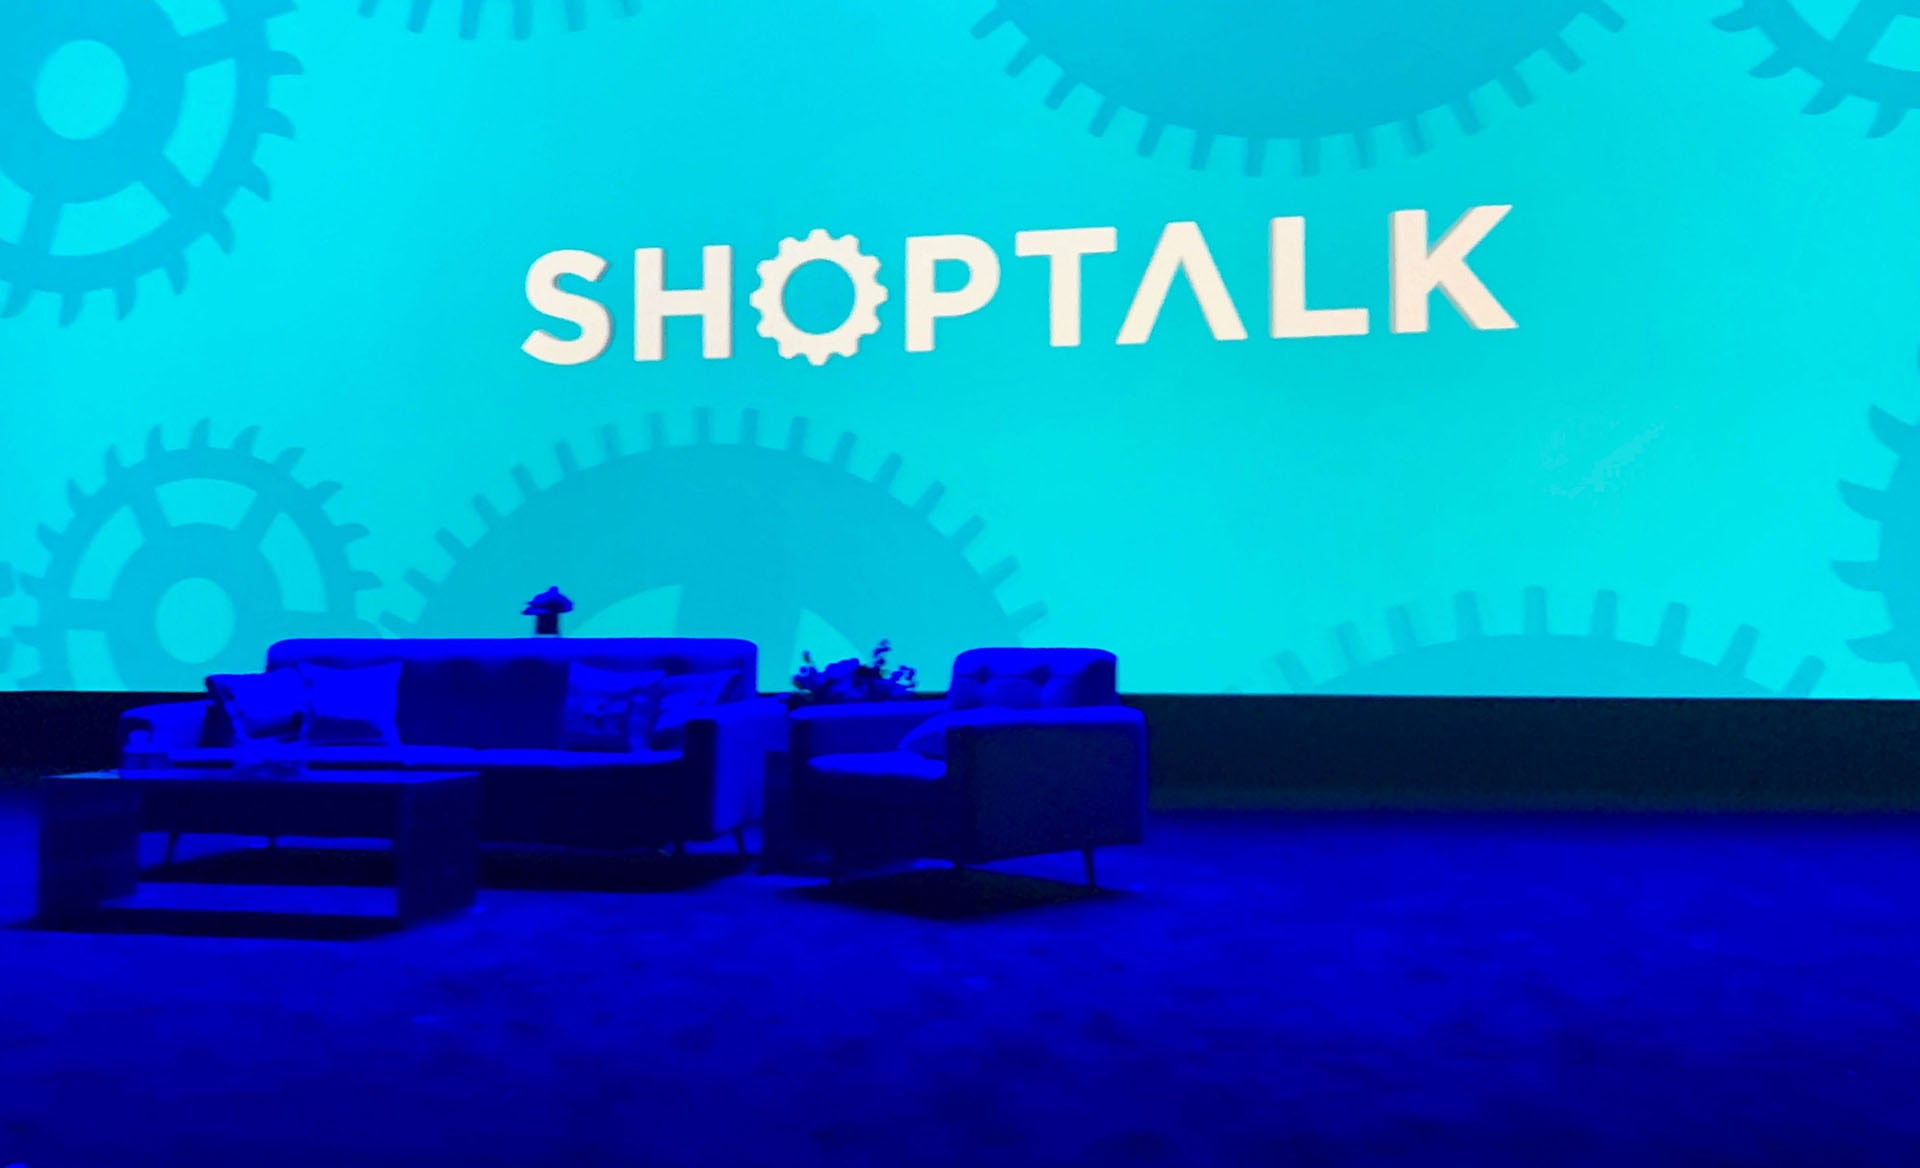 The 3 shared goals of retail leaders at Shoptalk2019